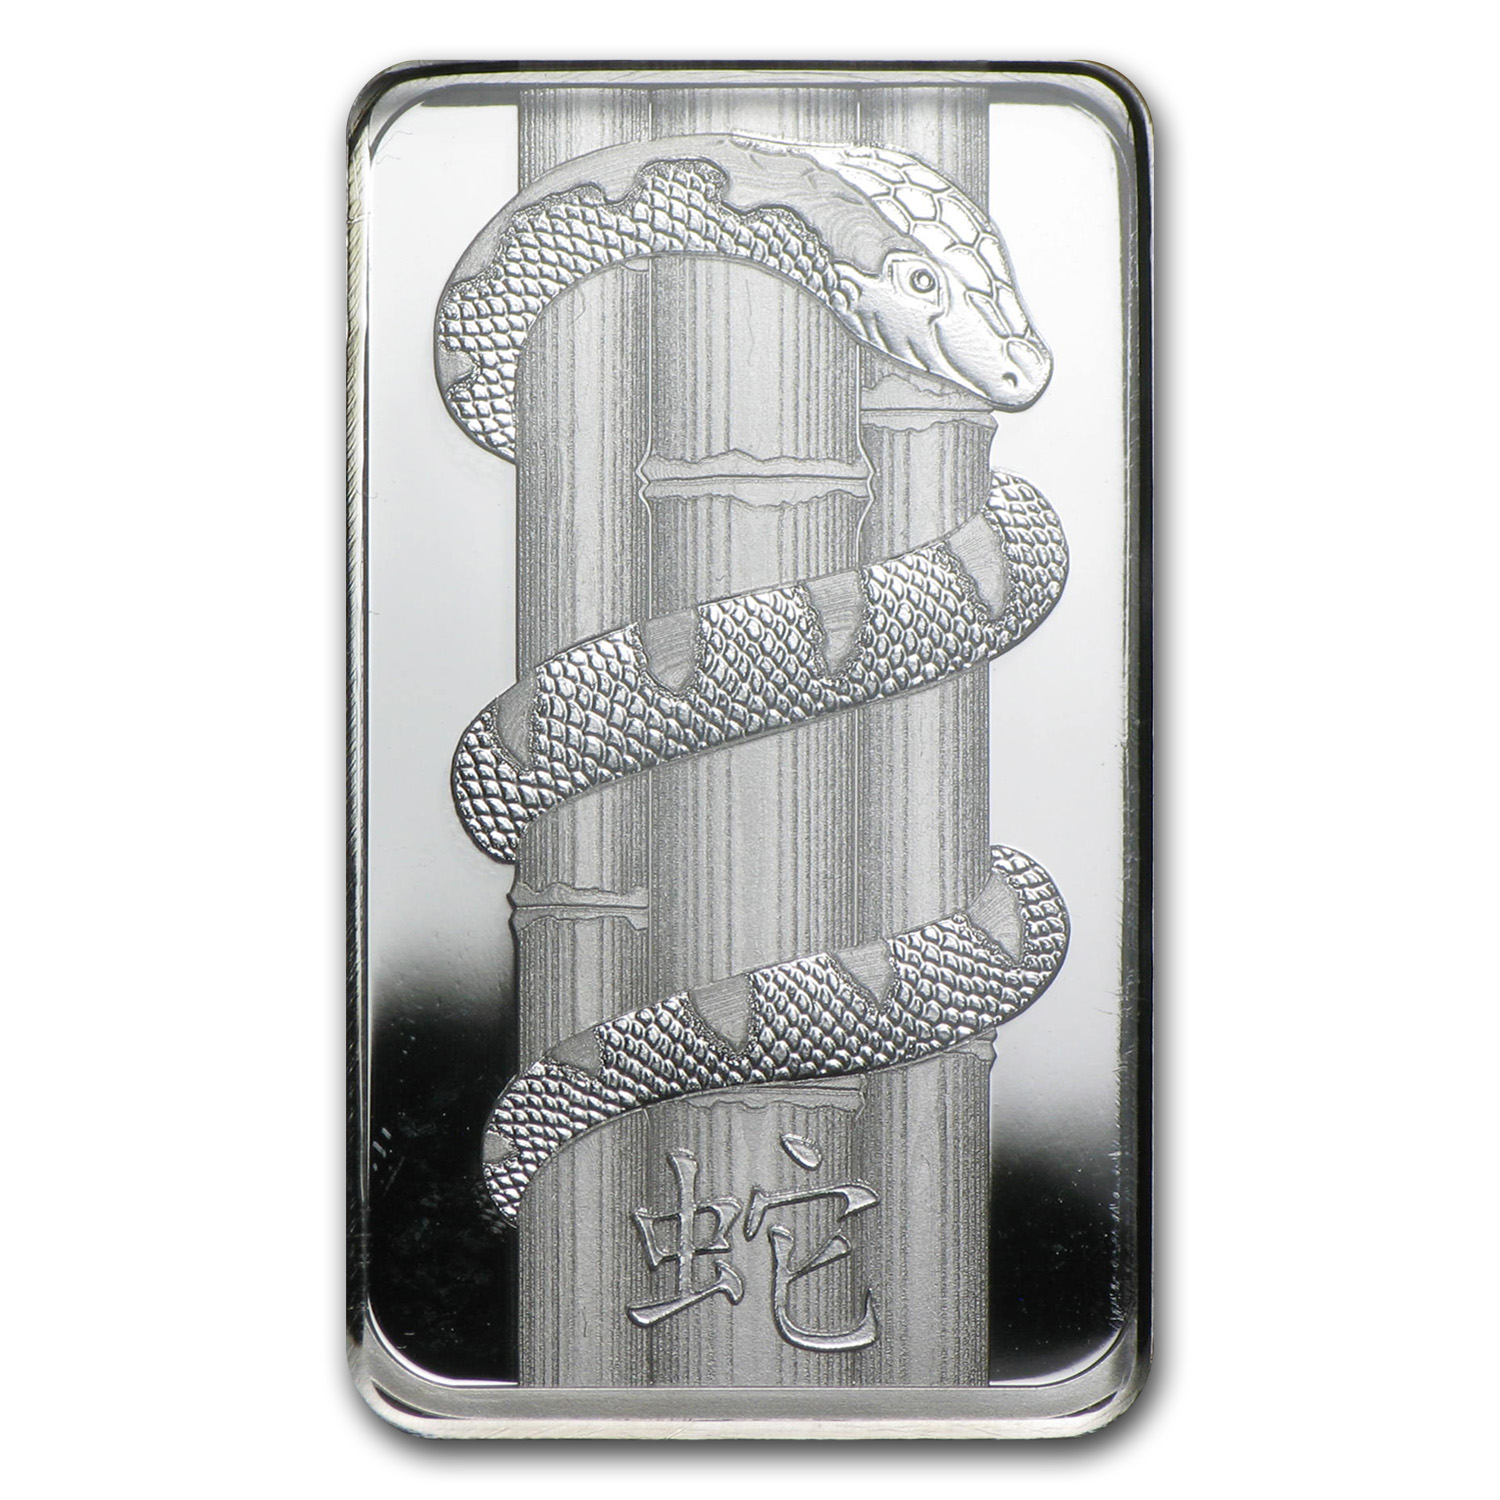 10 gram Silver Bars - Pamp Suisse (Year of the Snake)